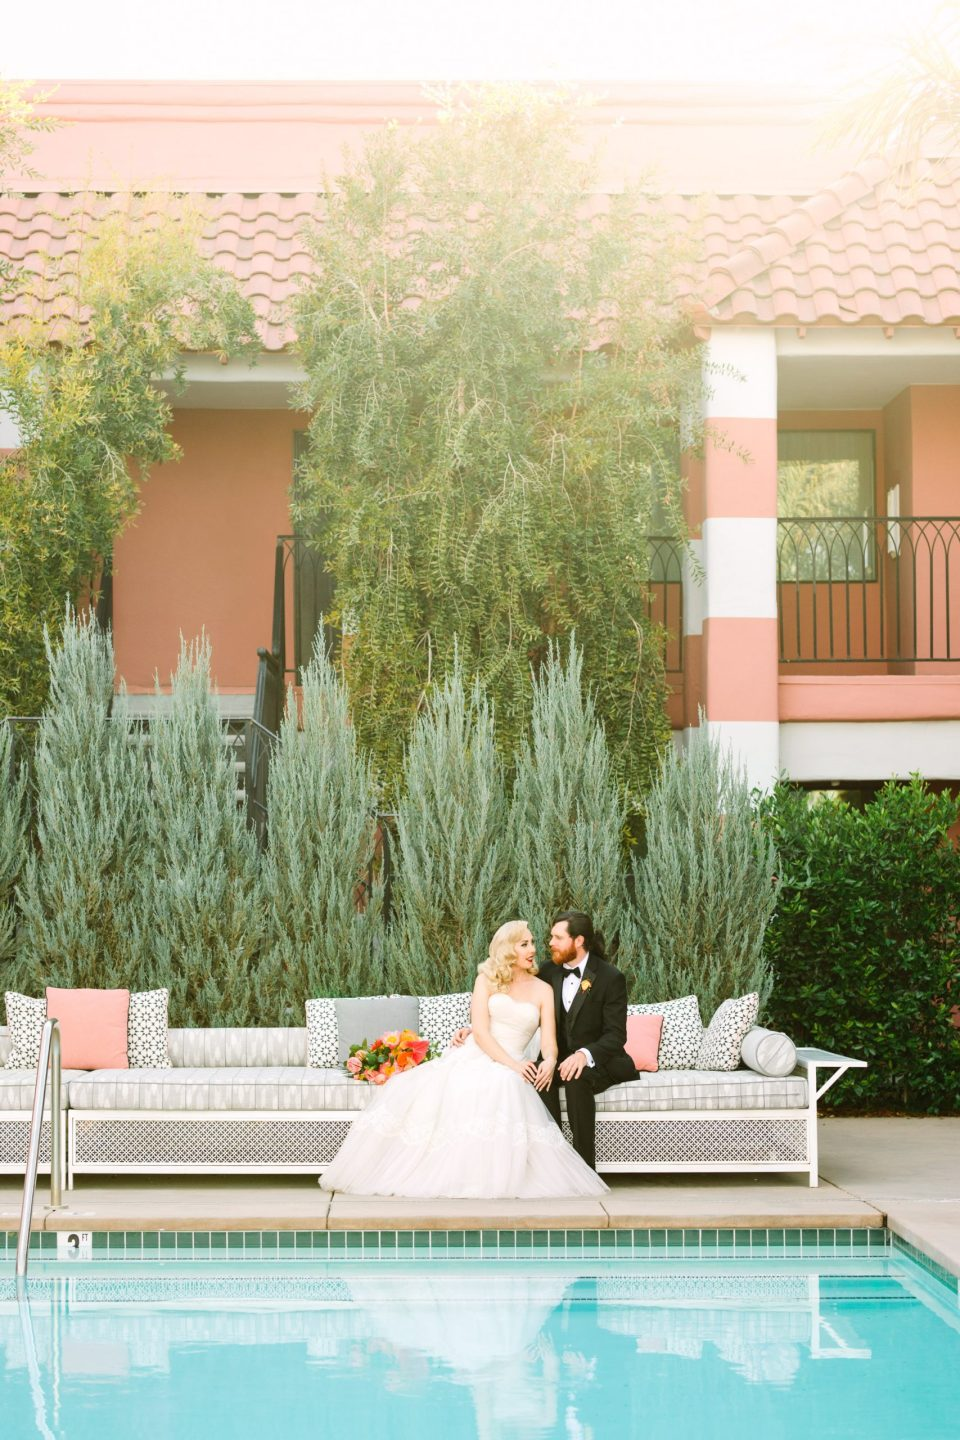 Bride and groom by pool at Sands Hotel - www.marycostaweddings.com